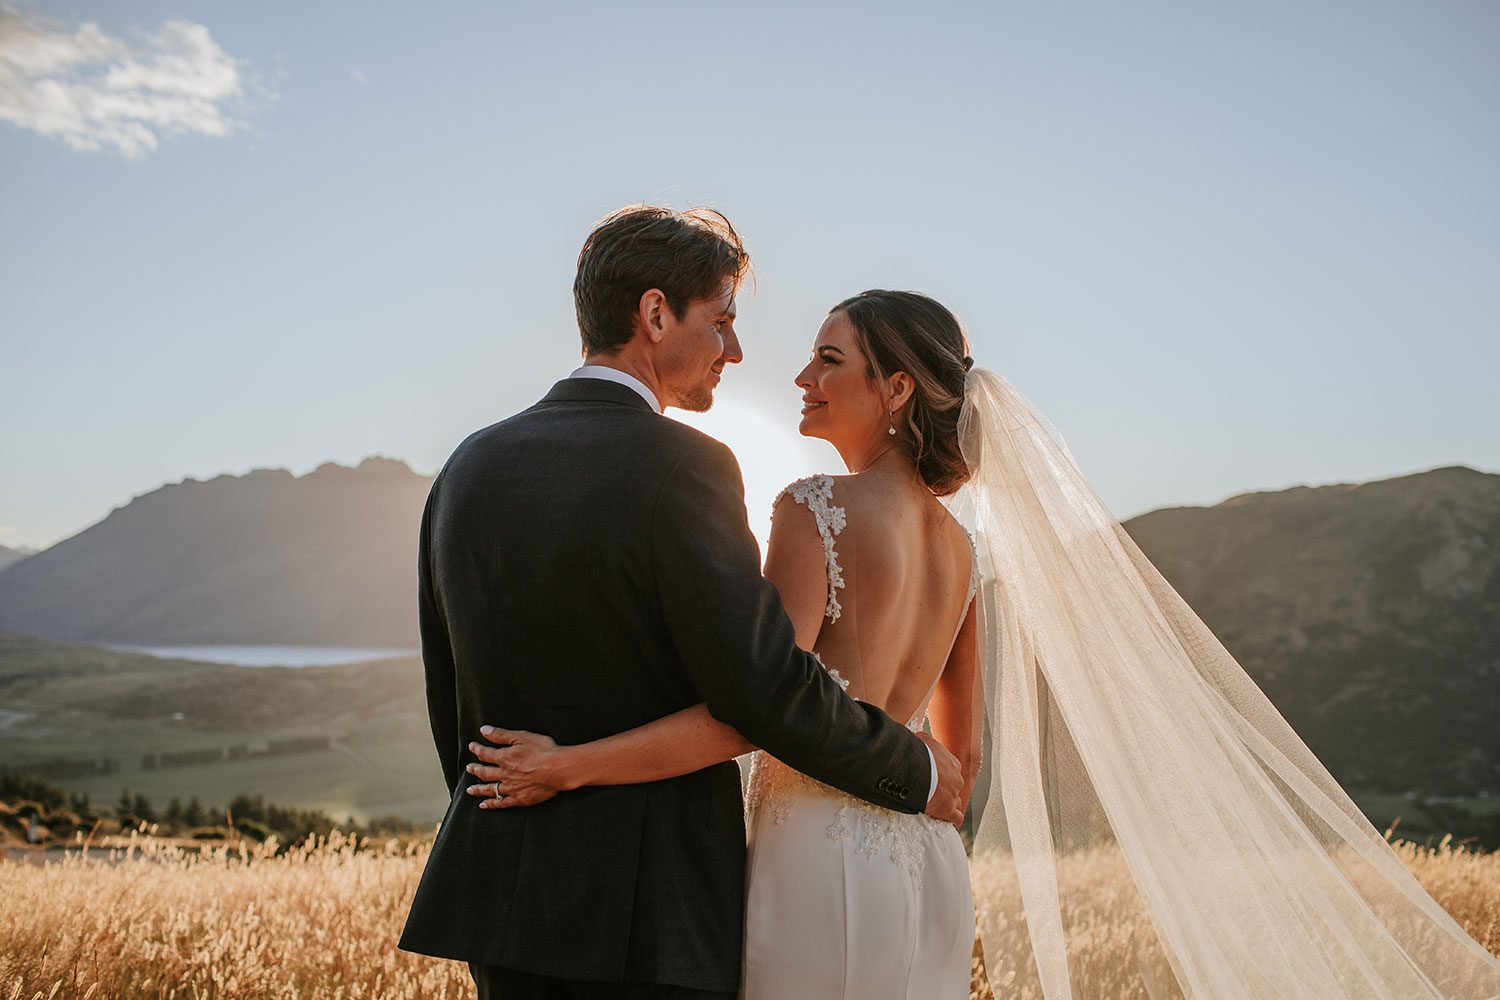 Bride wearing bespoke bridal gown with richly beaded lace over sheer tulle bodice and low back from Auckland wedding dress designer Vinka designs - with groom back embrace in field